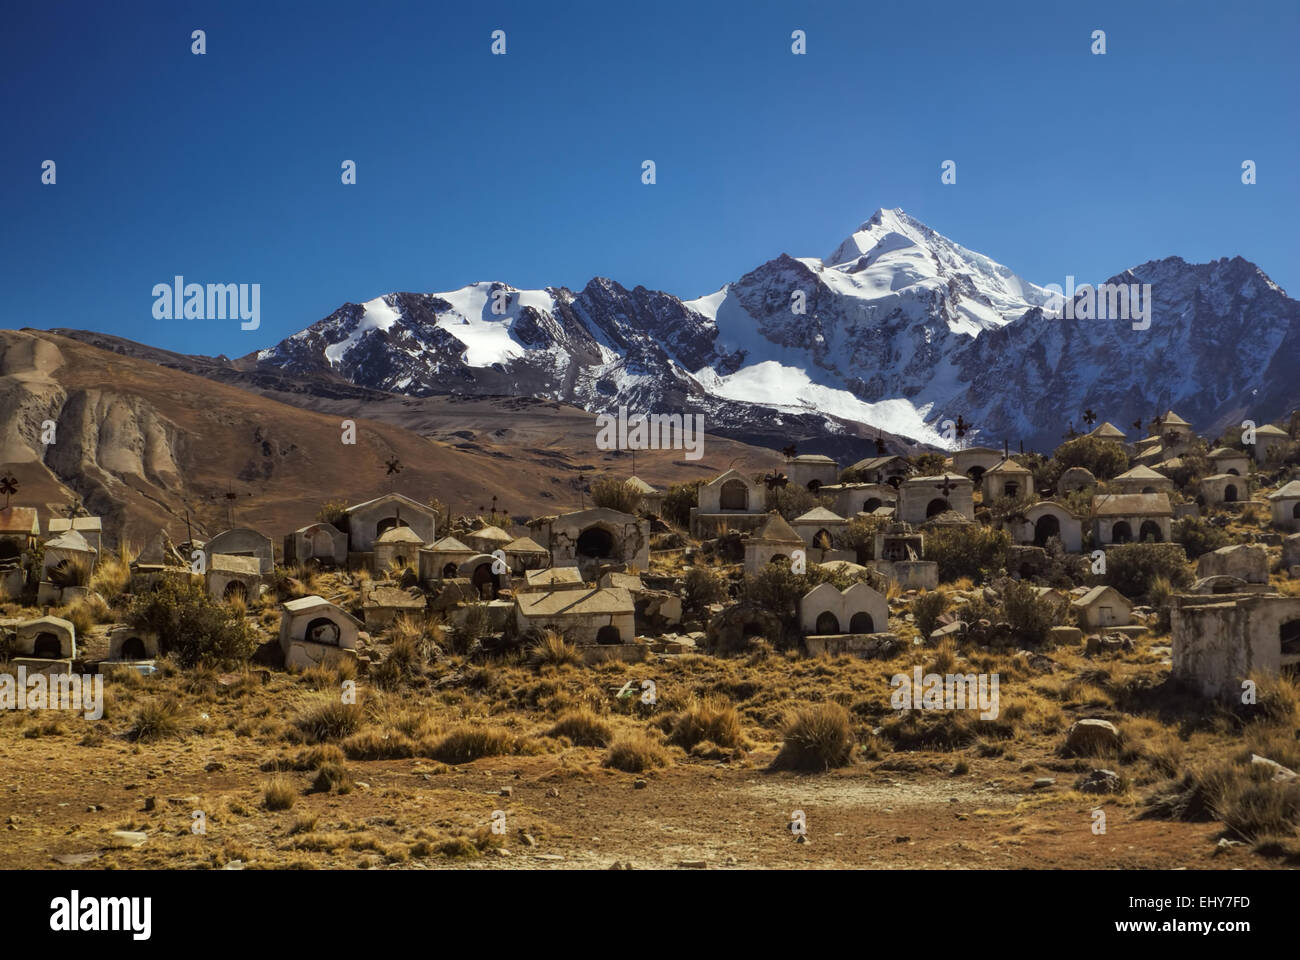 Cemetery with Huayna Potosi mountain in the background, peak in Bolivian Andes - Stock Image